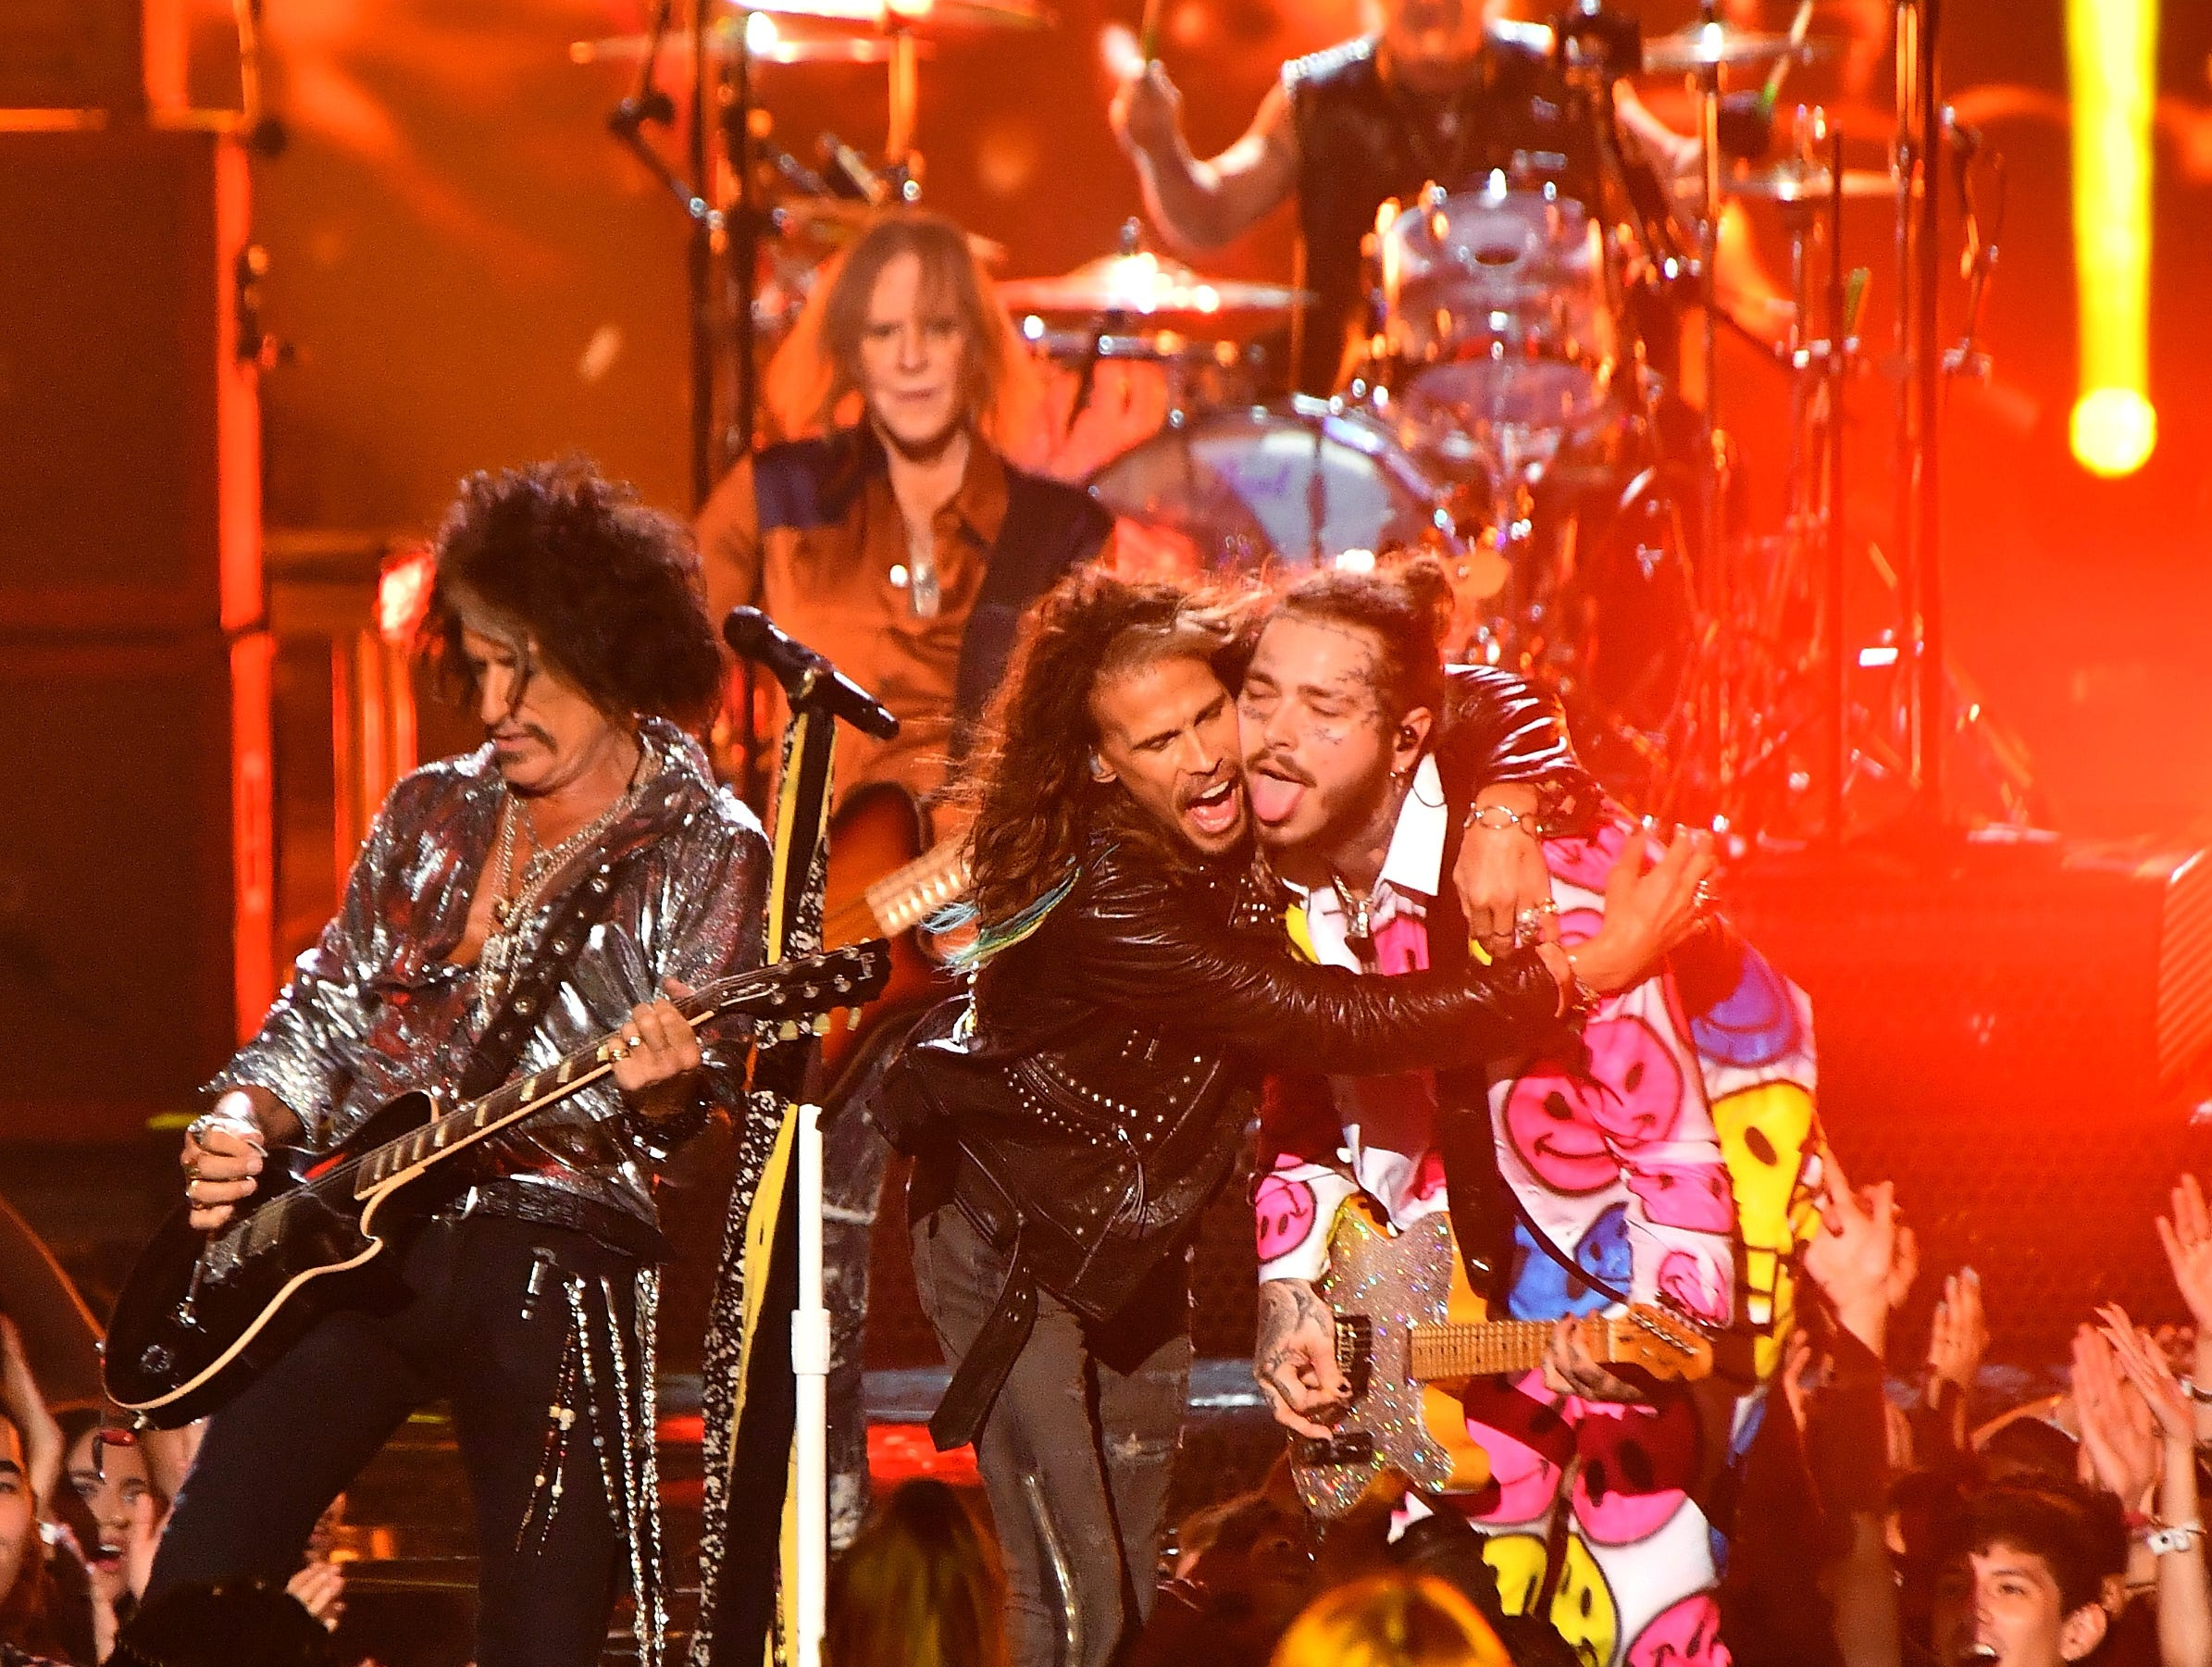 Joe Perry (left) and Steven Tyler of Aerosmith perform with Post Malone (right) onstage.